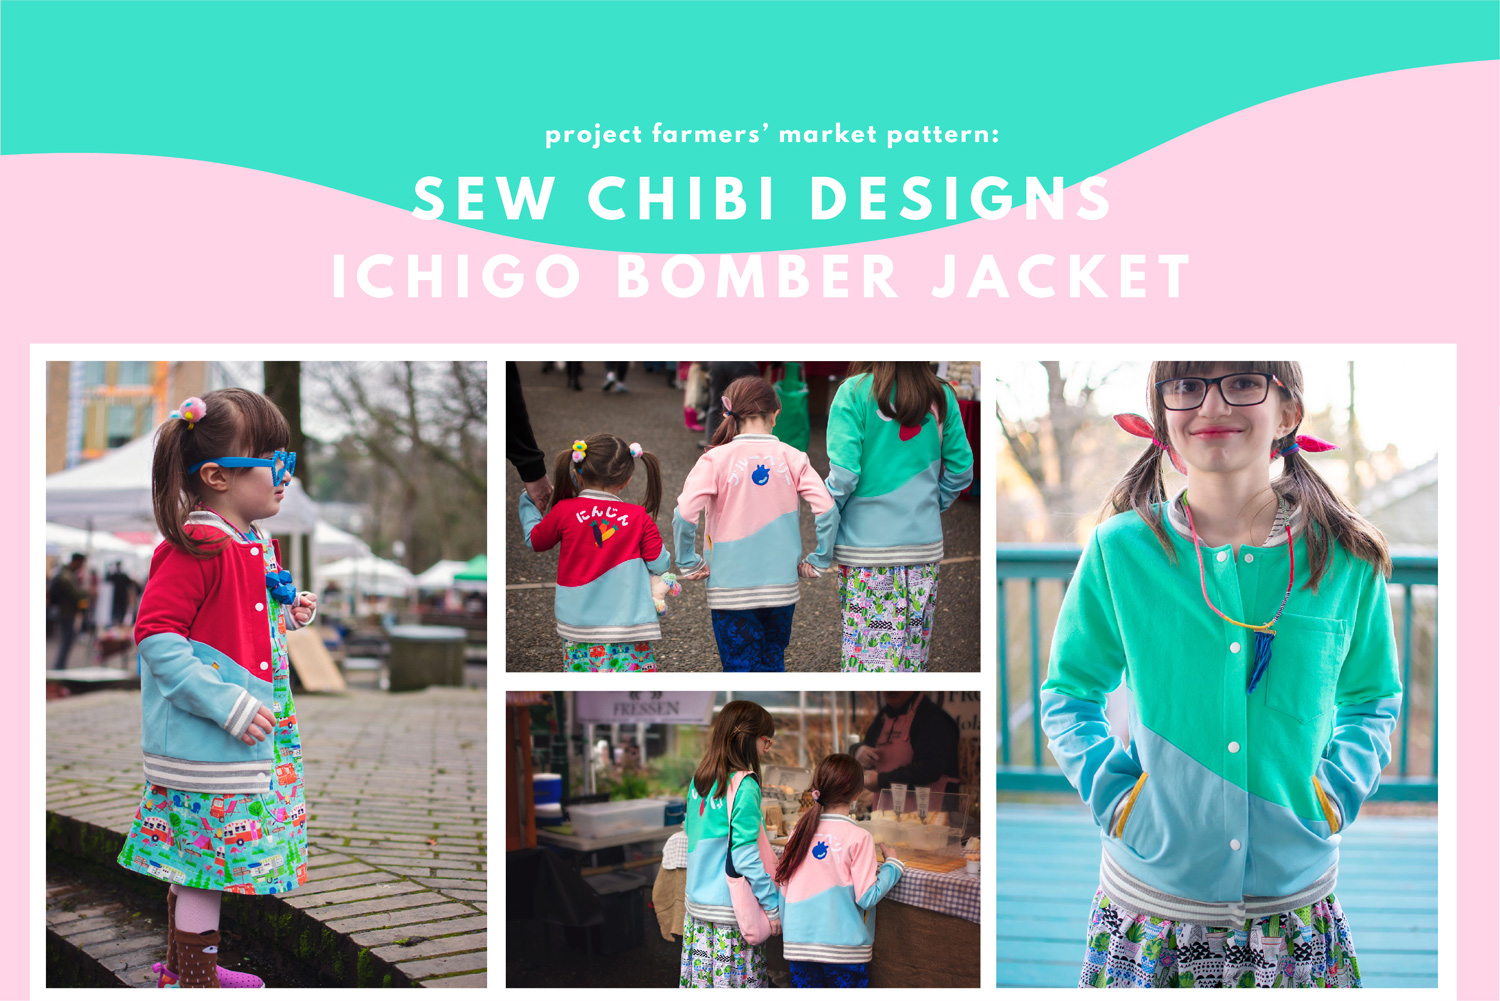 �The Ichigo Bomber Jacket PDF Pattern by Sew Chibi Designs. A lightweight, color blocked, knit coat for all kids: boys and girls, from baby to teen! Perfect for spring! $9 USD  Also snag a copy of the FREE PATTERN: the Mochi Bag for Kids and Adults. An adjustable strap, zippered chest bag (can be worn on hips too!) with a front pocket! A must-have accessory for any outing!